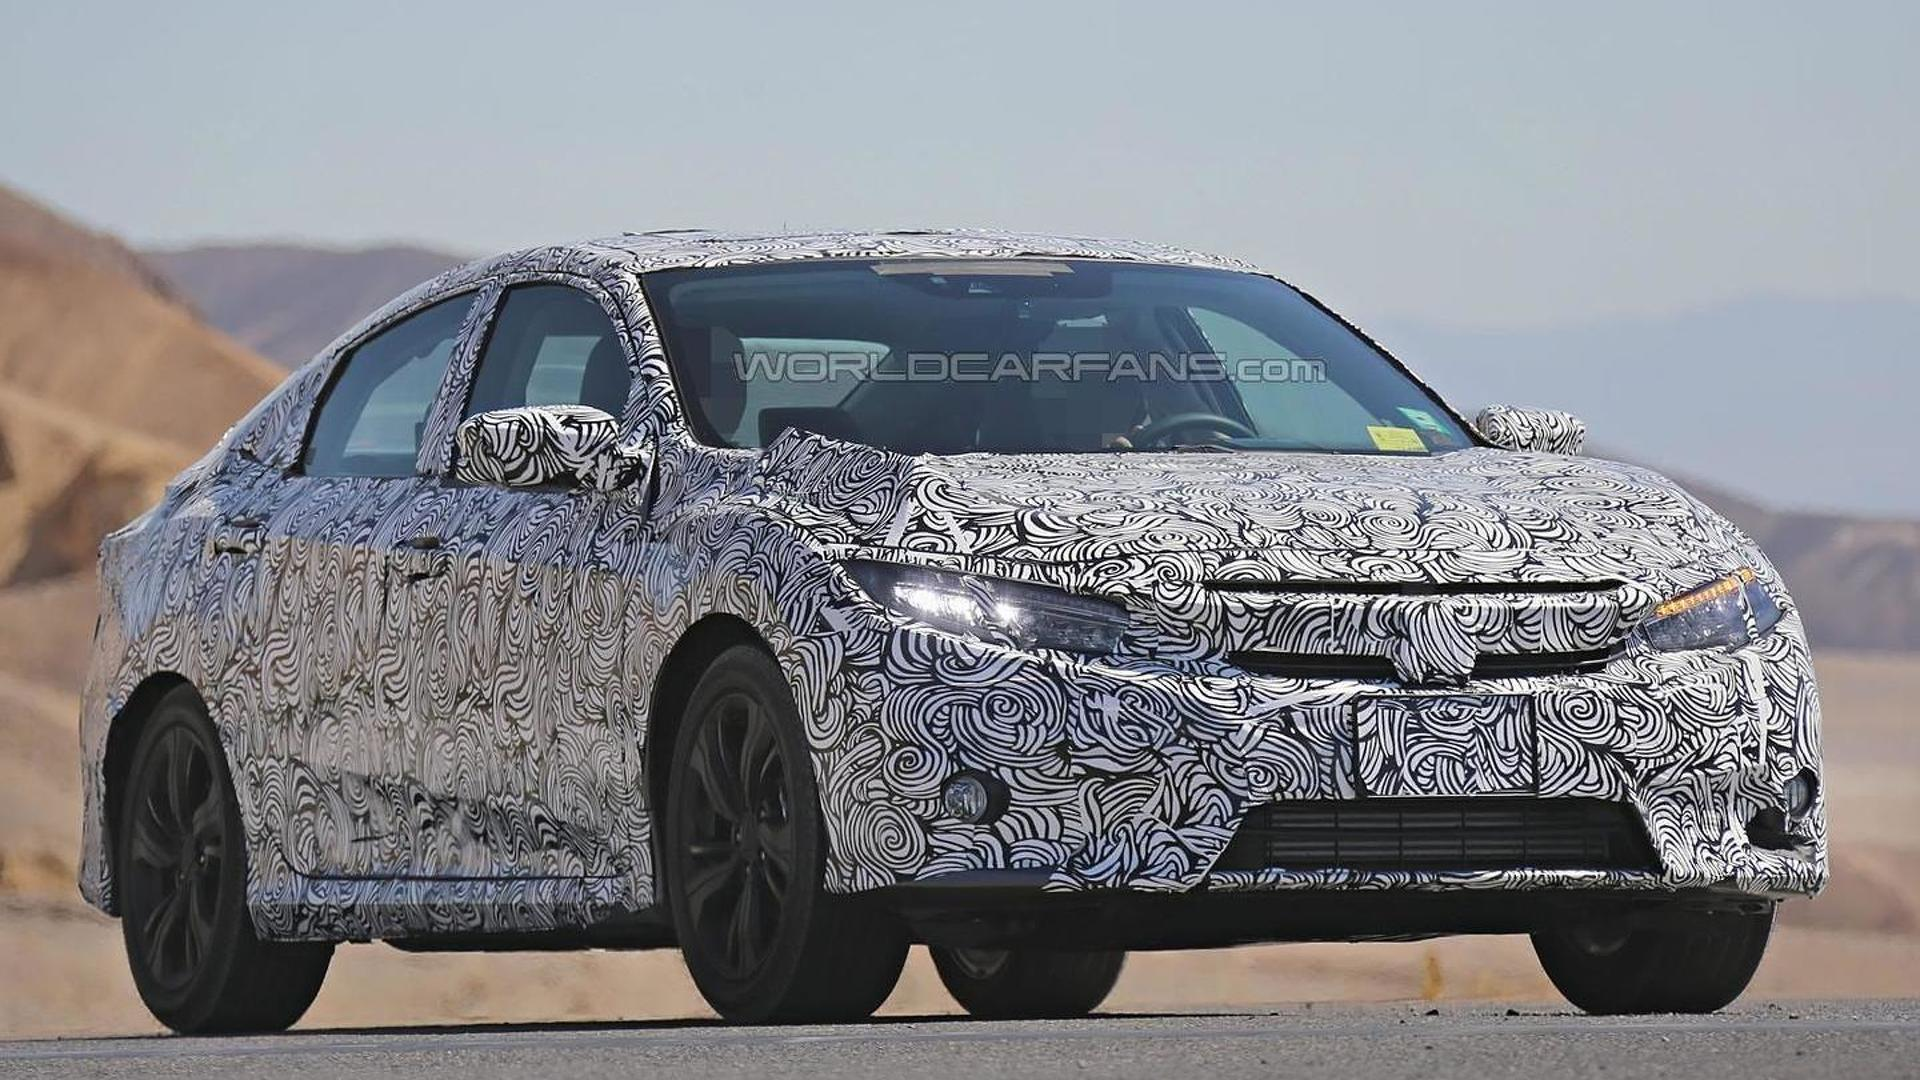 2017 Honda Civic spied inside and out with full LED headlights and heated rear seats (45 pics)